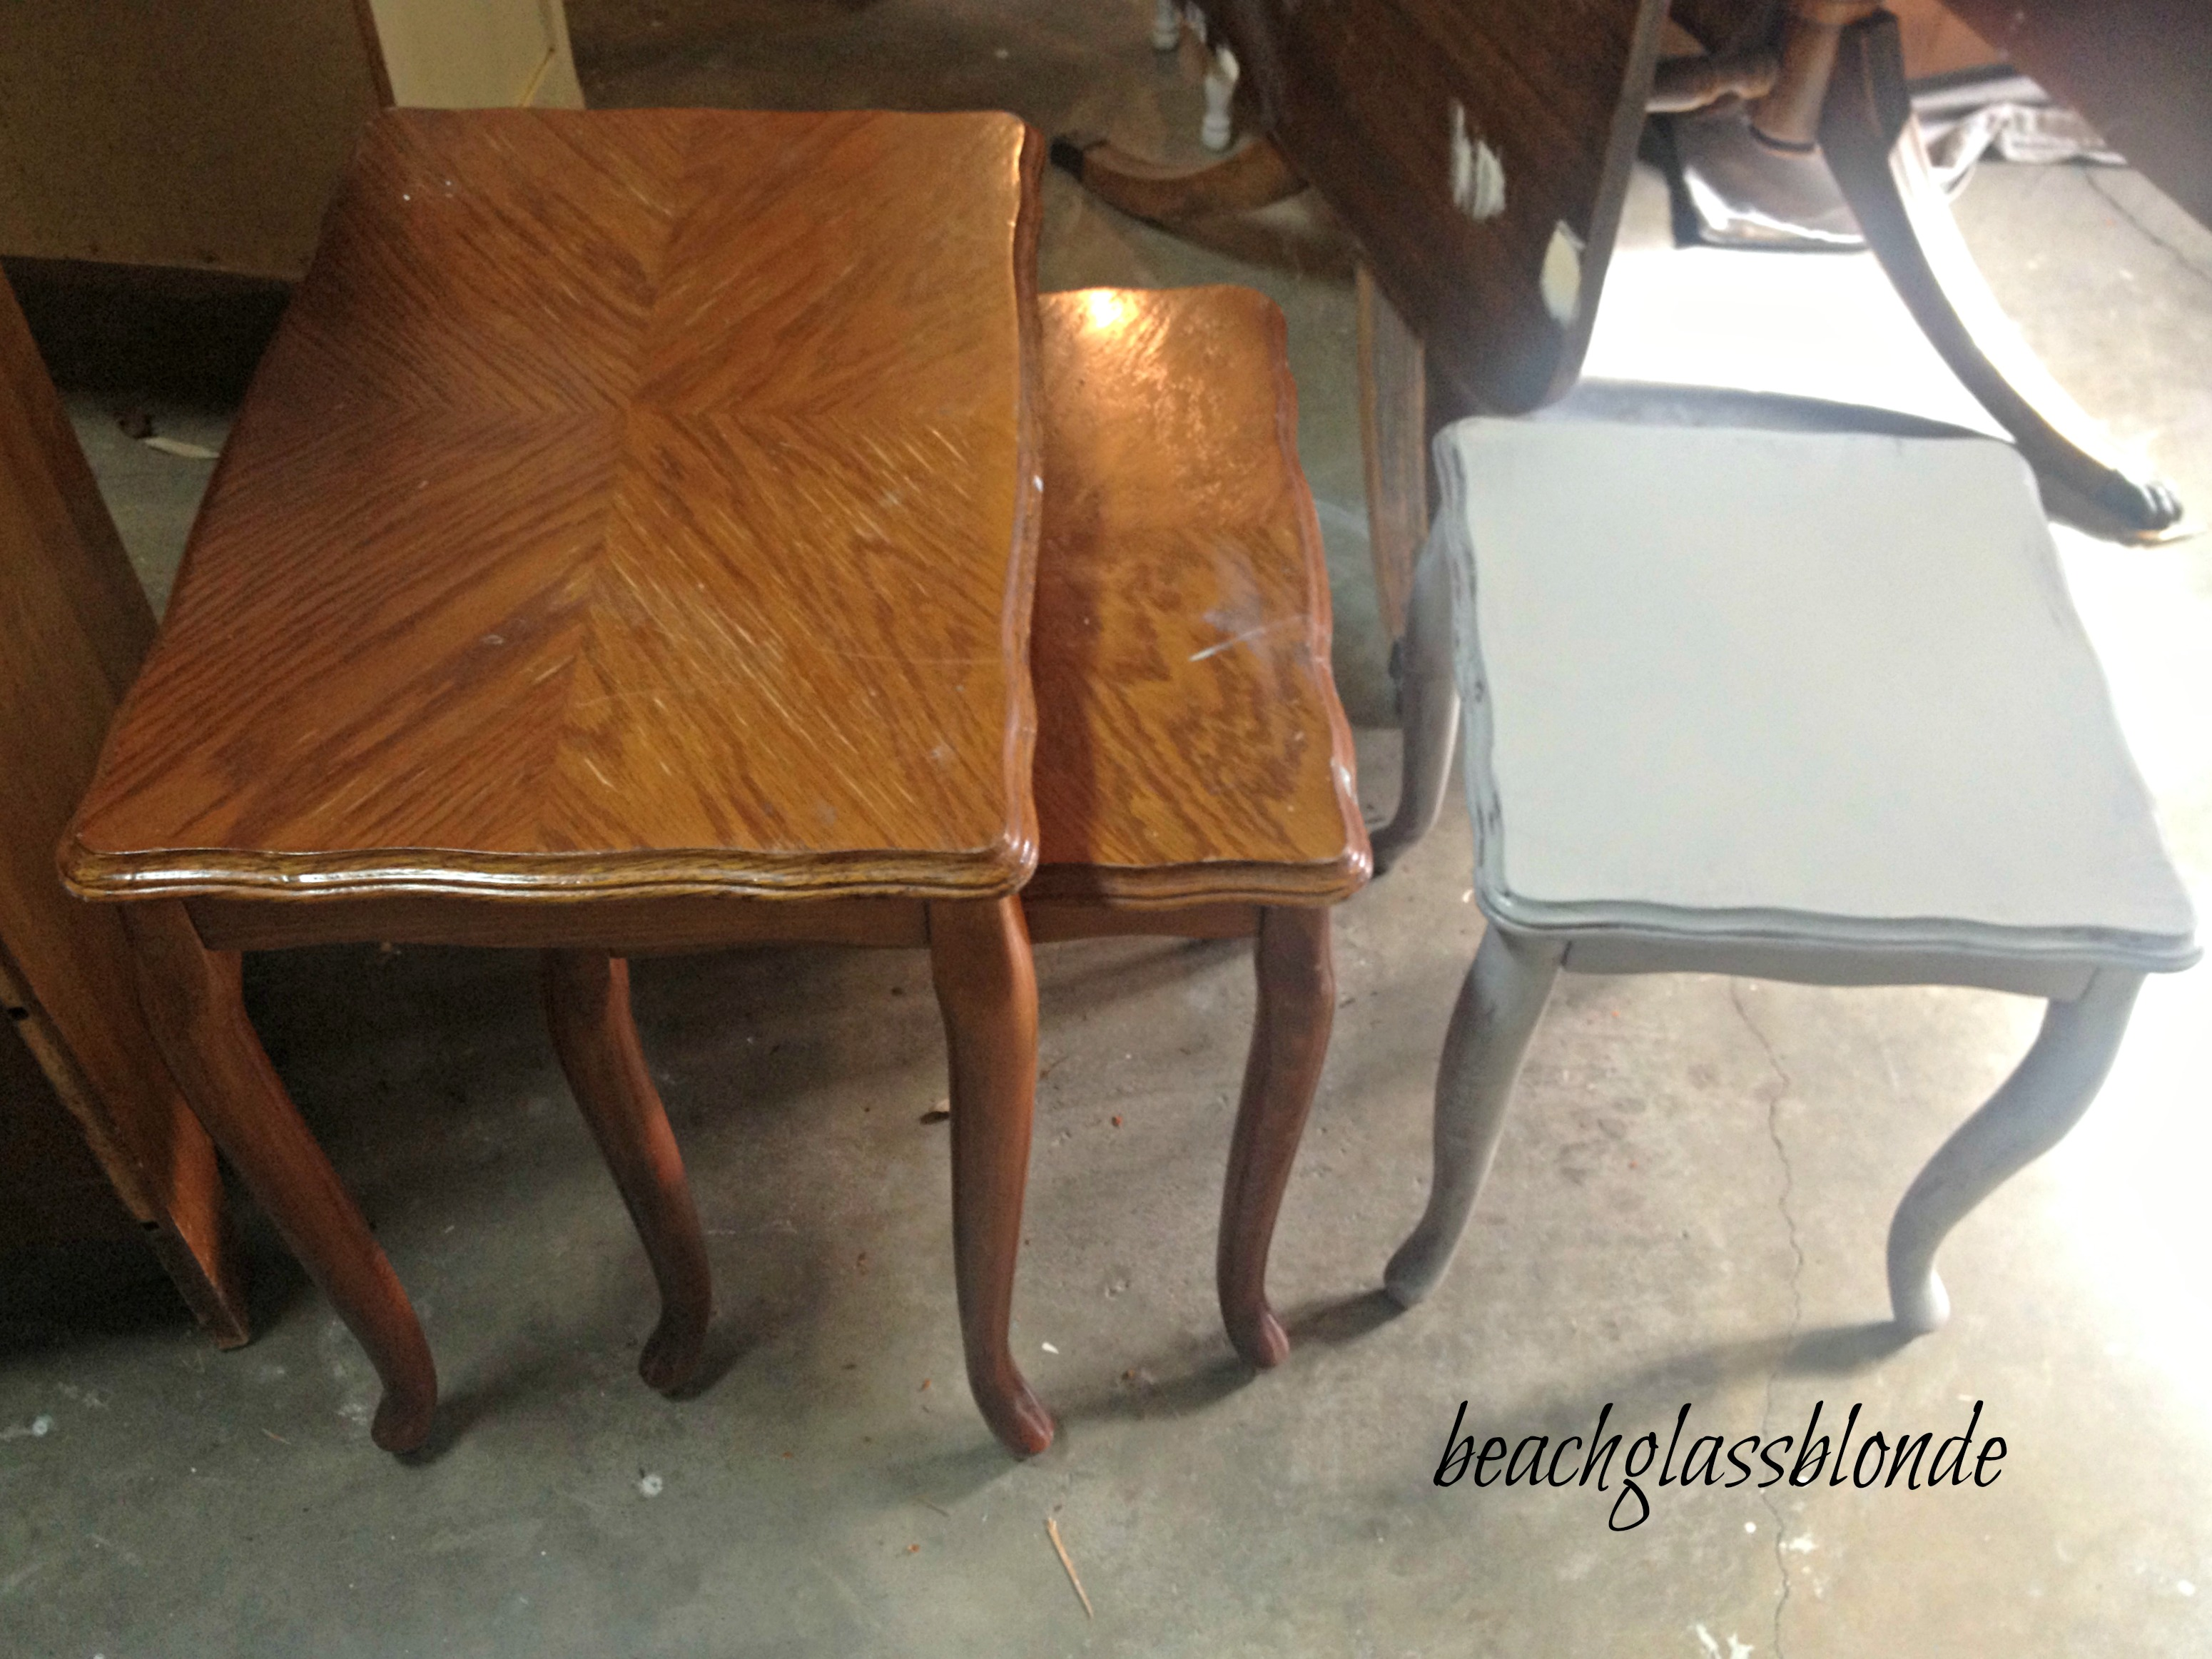 Nesting Tables -Before